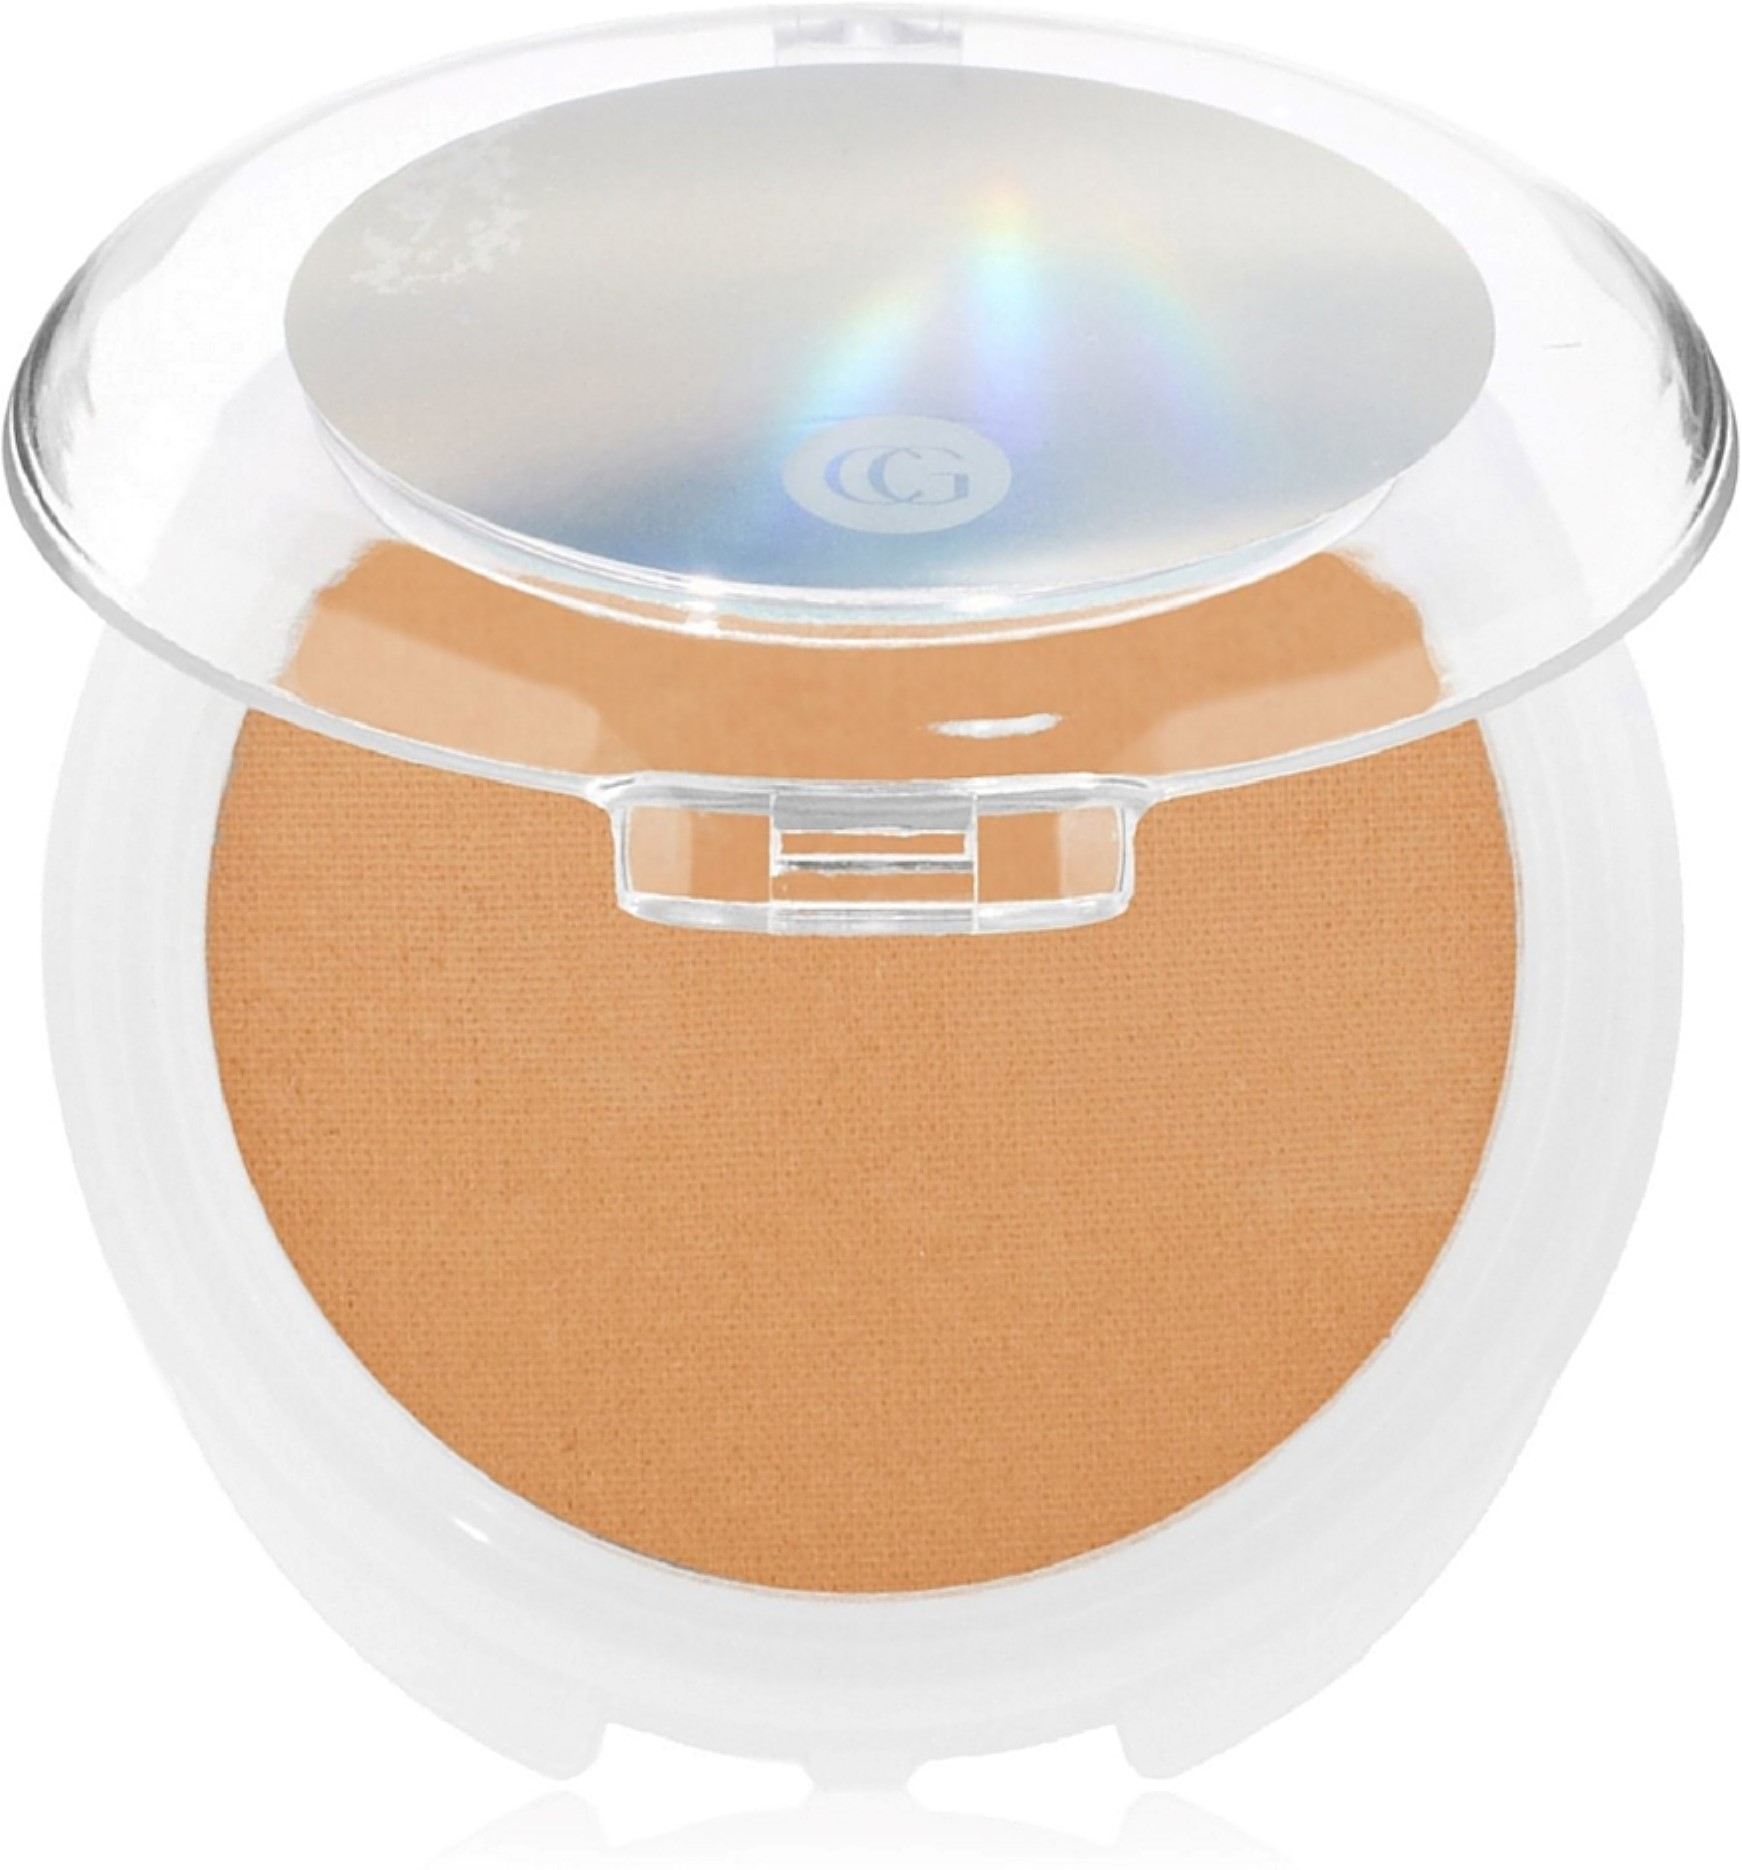 CoverGirl TruBlend Pressed Powder, Translucent Tawny [5] 0.39 oz (Pack of 2)